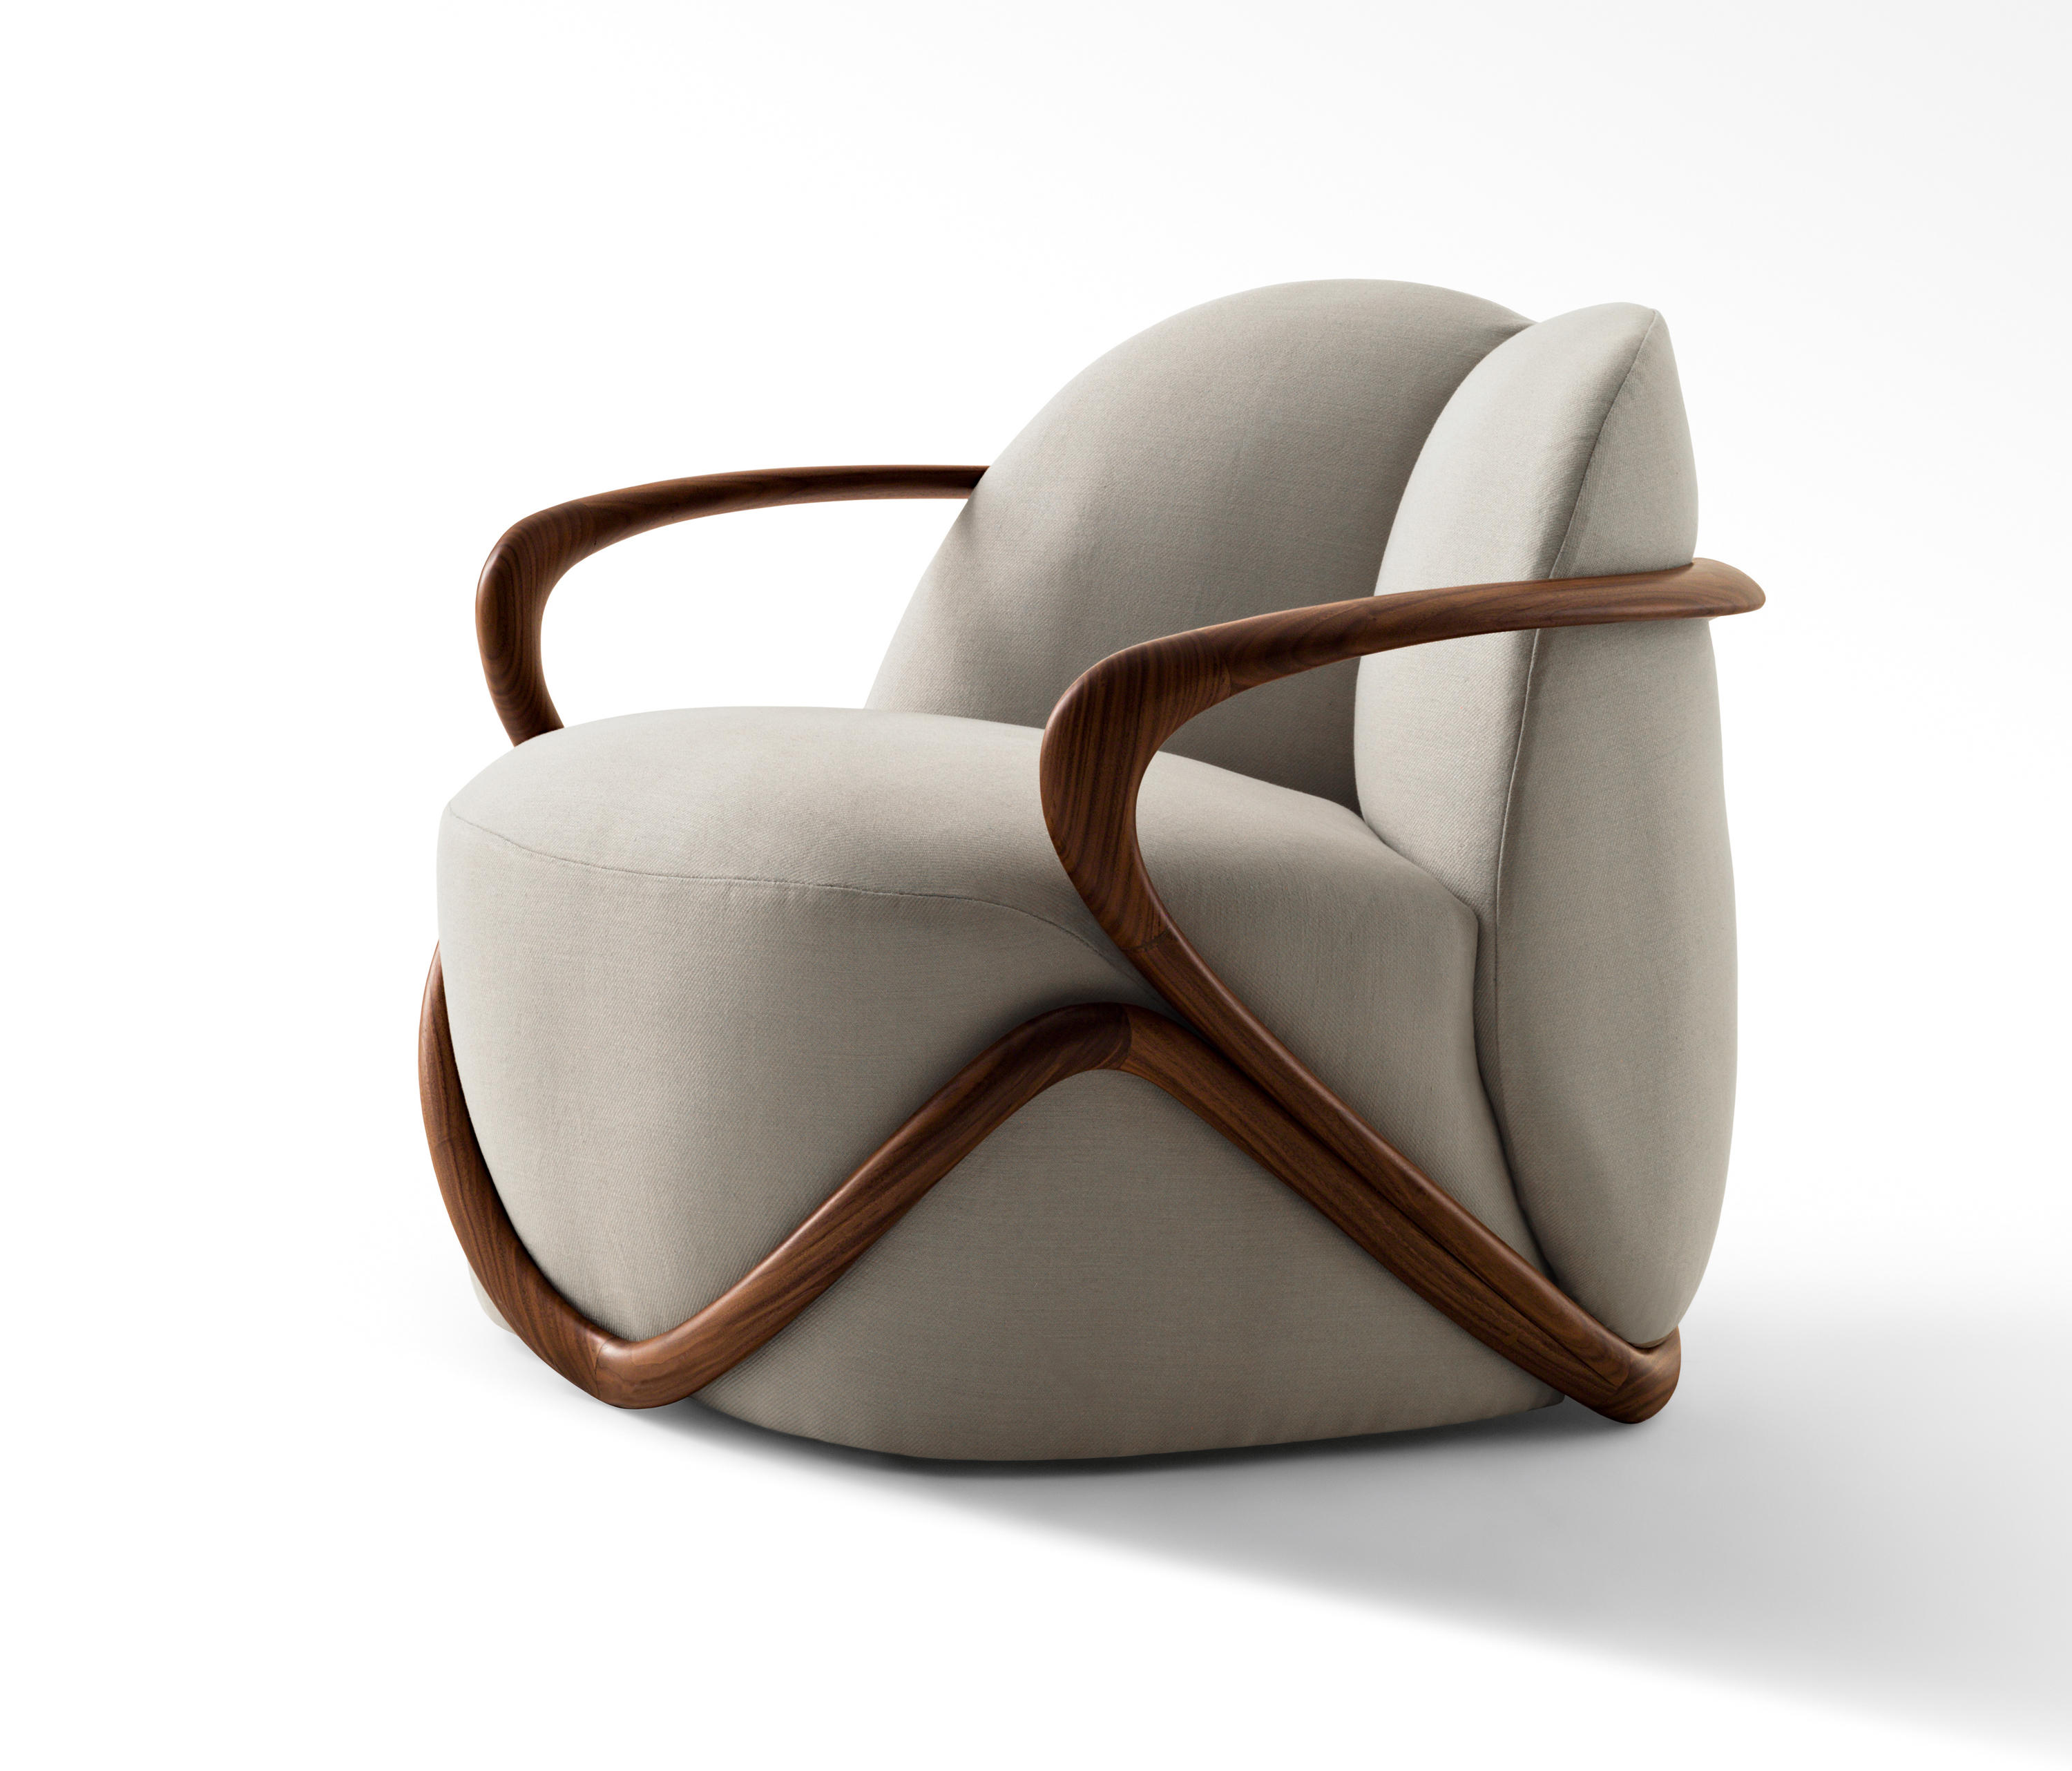 Hug armchair lounge chairs from giorgetti architonic for Armchair furniture